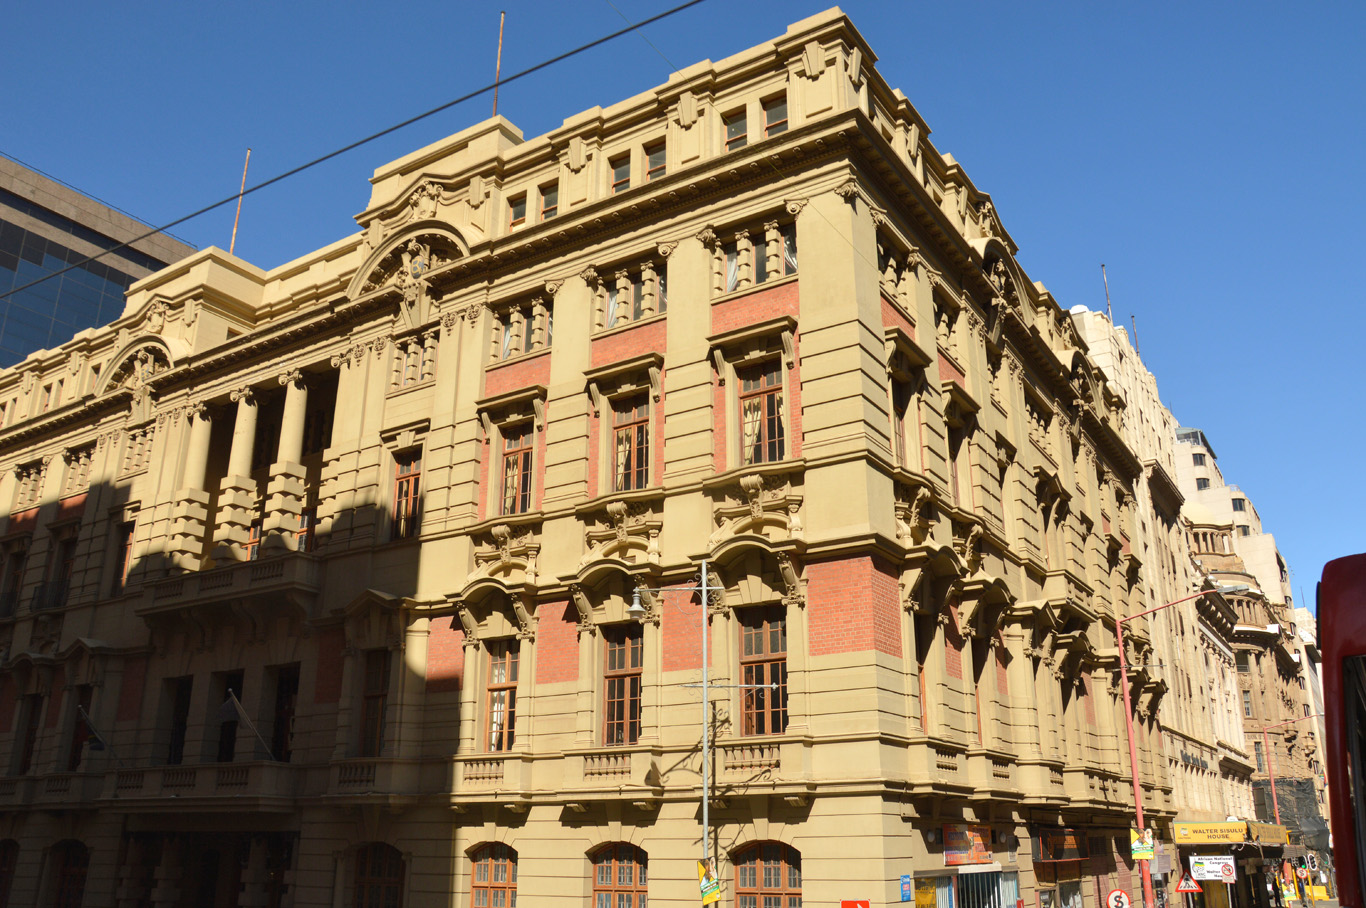 Old architecture in Johannesburg